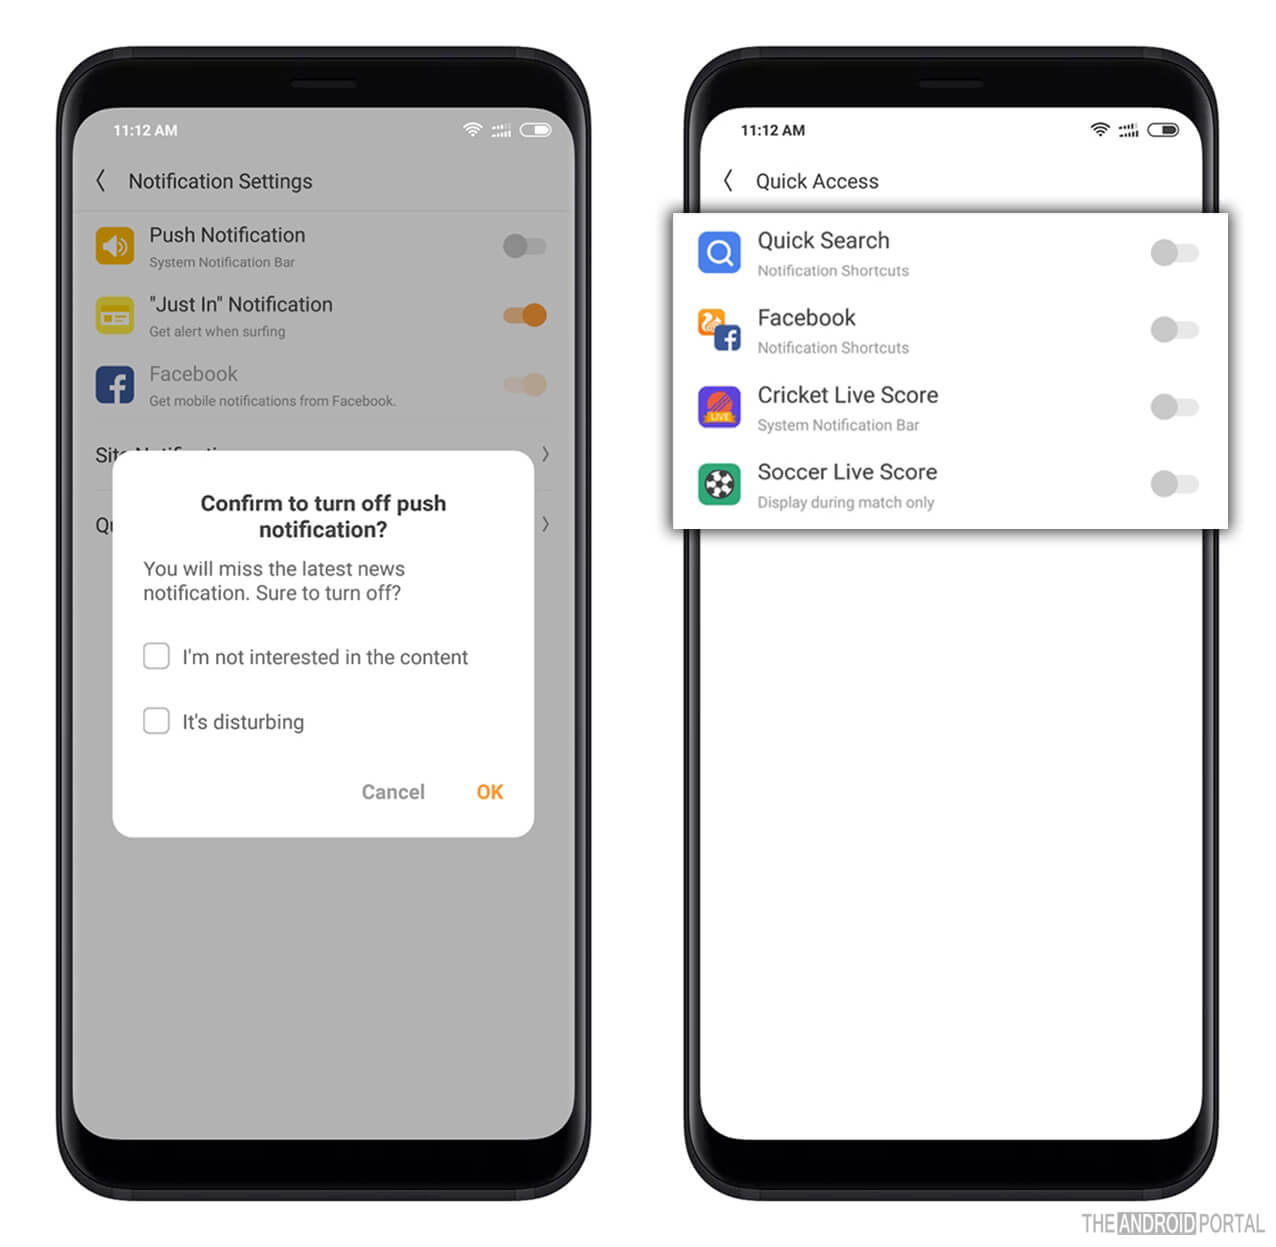 UC Browser Notifications - All You Need to Know